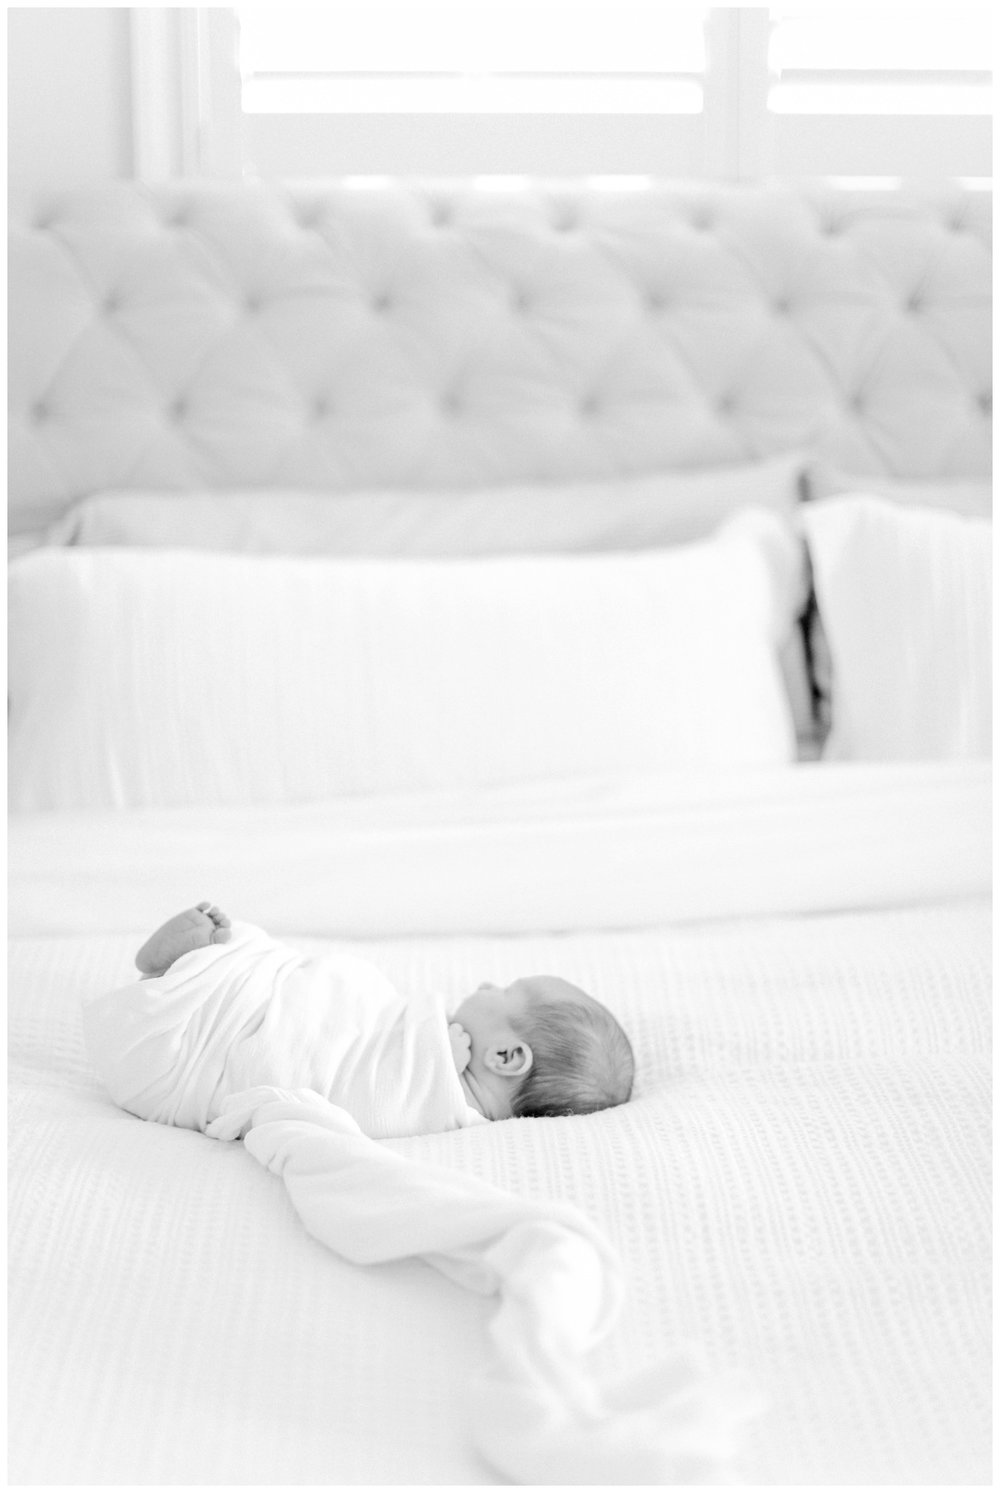 The_Moore's_Family_Newport_Beach_Lifestyle_Family_Photographer_Orange_County_Family_Photography_Cori_Kleckner_Photography_Orange_County_Newborn_Photographer_Family_Photos_Session__1405.jpg